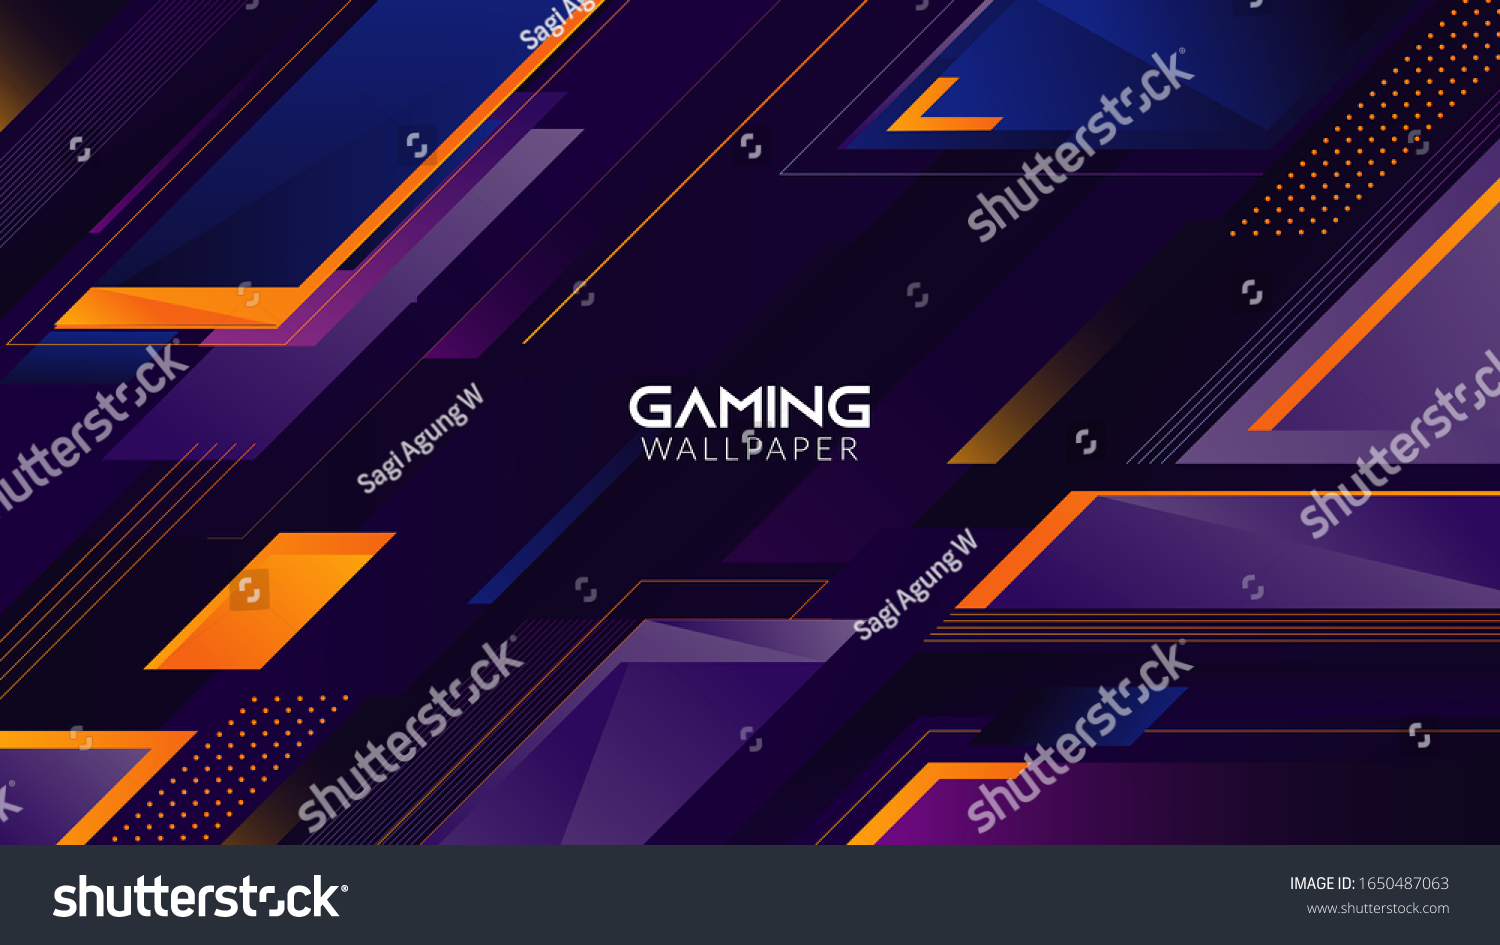 stock vector geometric abstract gaming wallpaper background k 1650487063